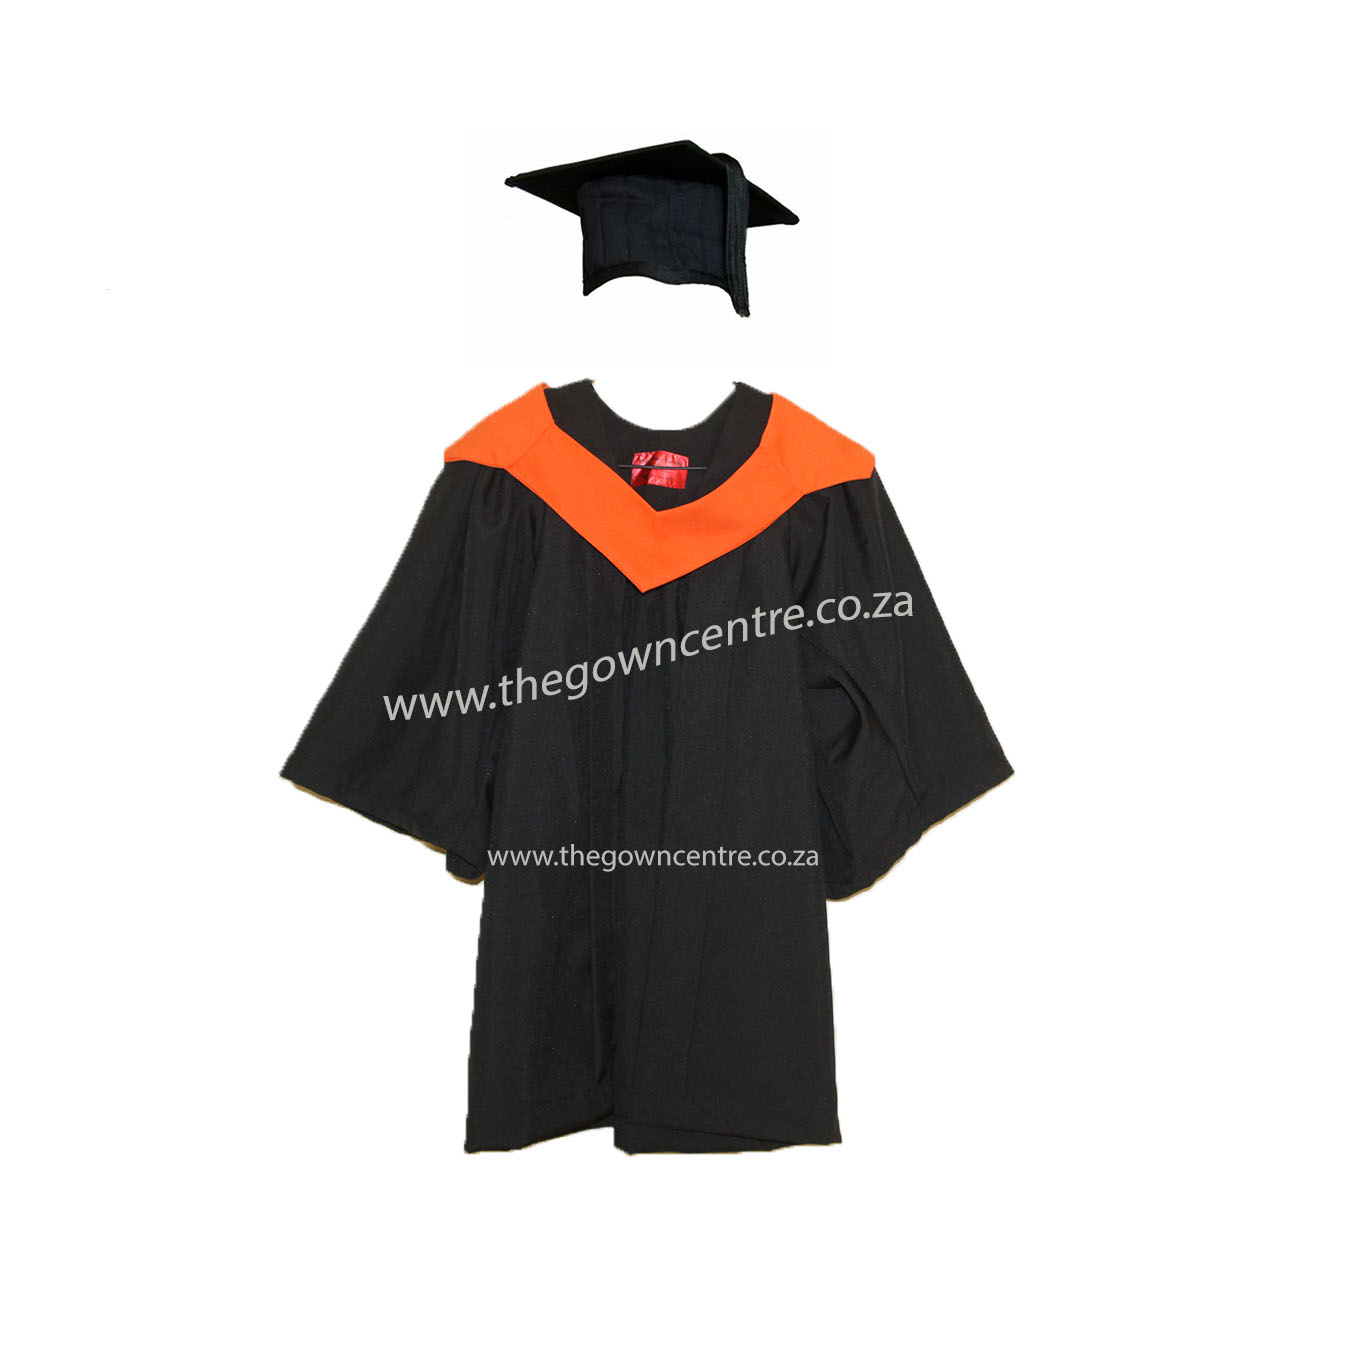 Pre-school gowns for sales or hire